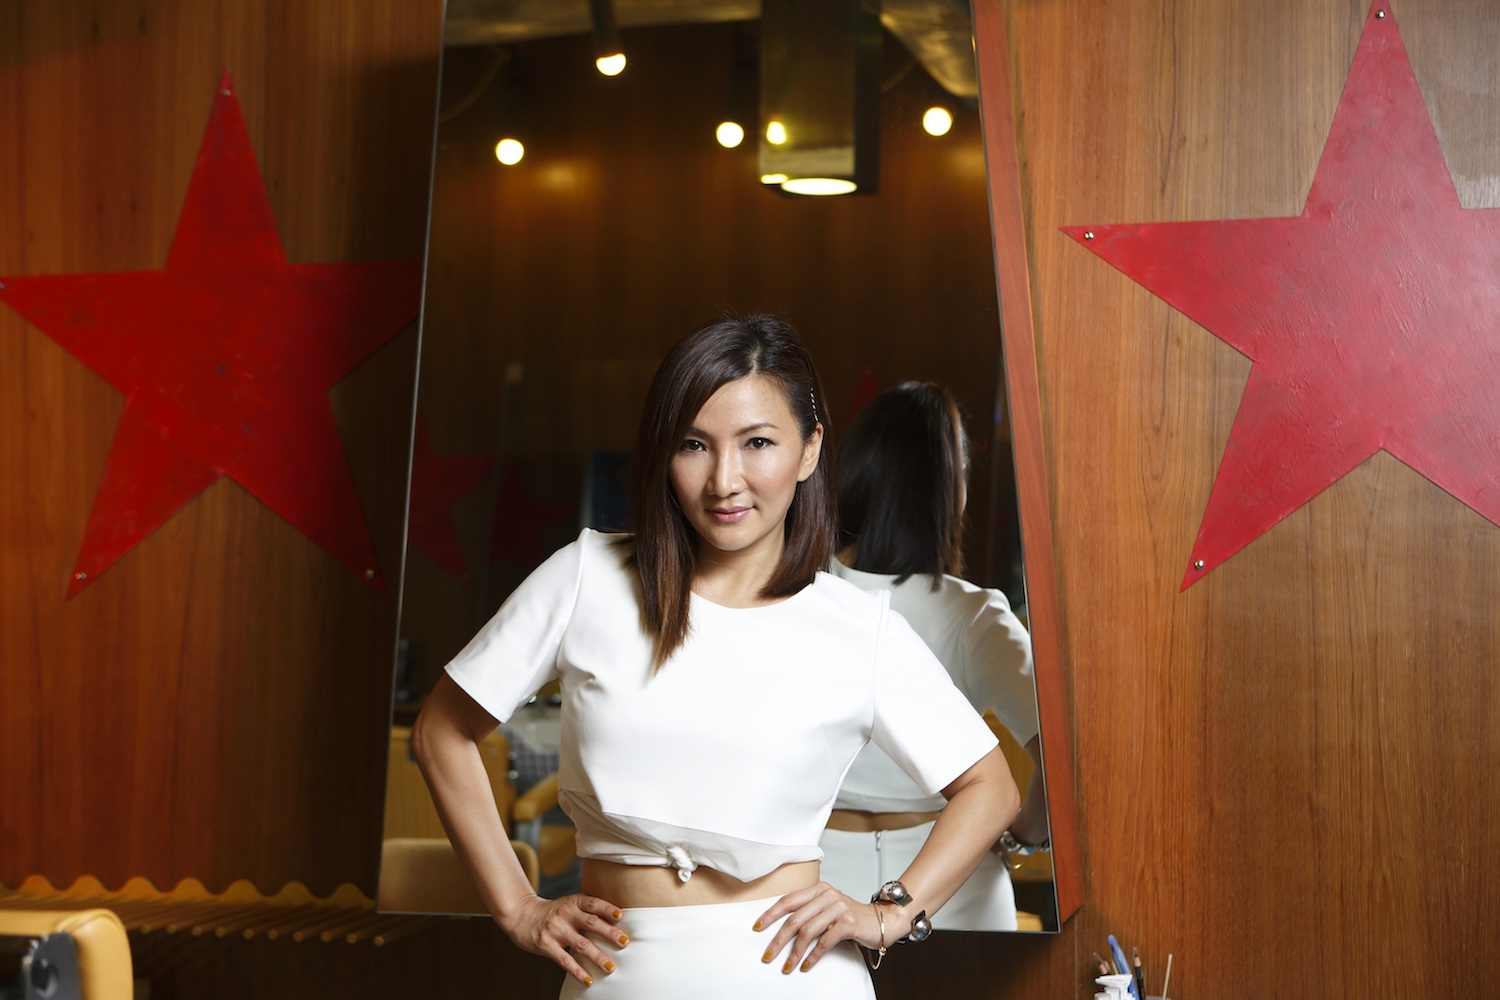 Talking wines and wellness with Cynthia Chua